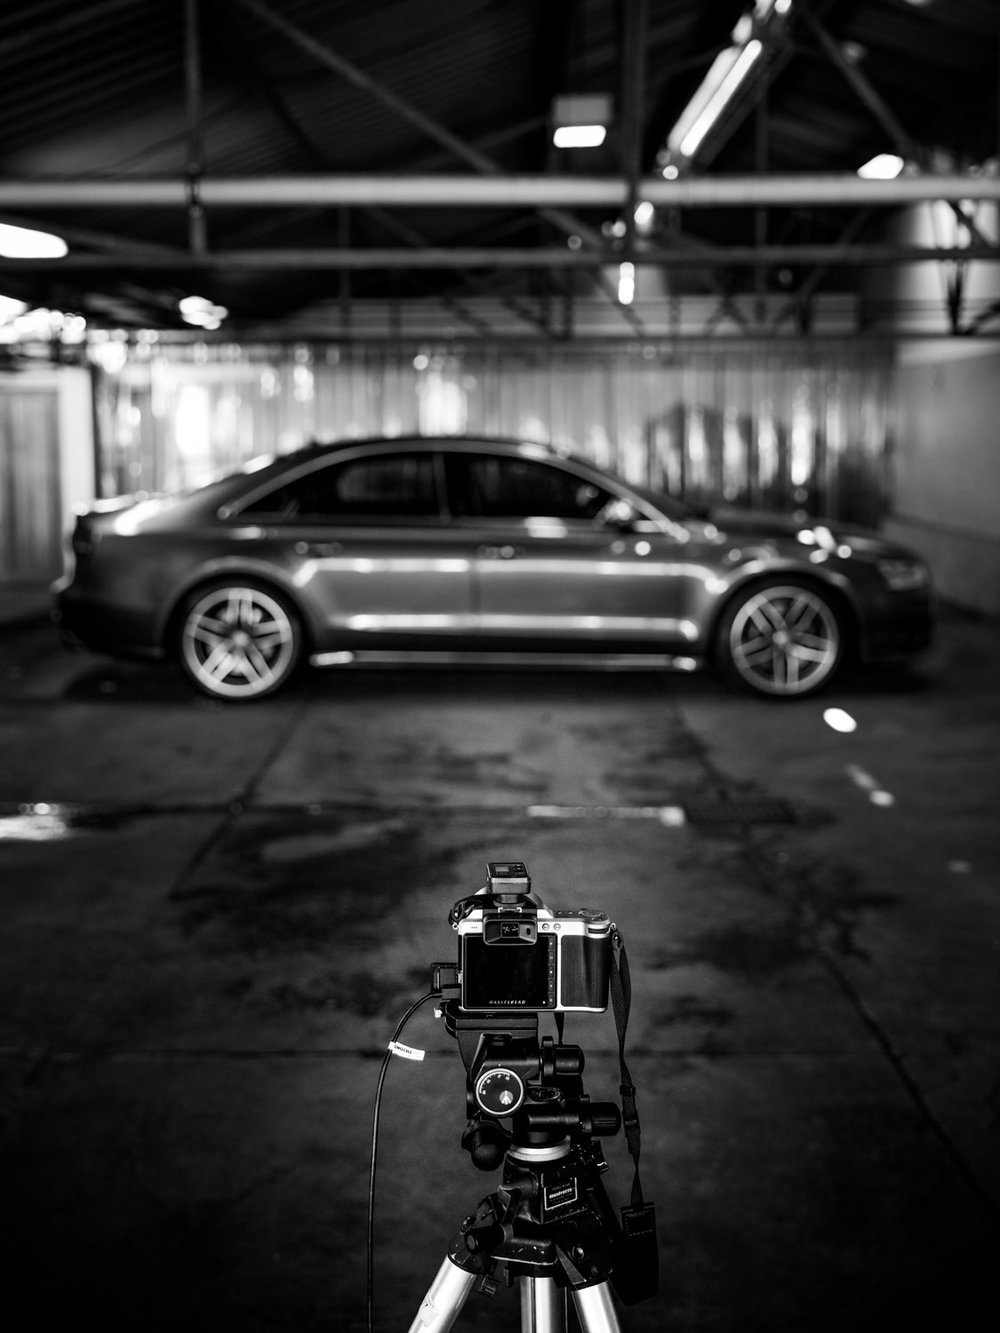 tim gerges - audi south africa - behind the scenes - audi s8-5.jpg